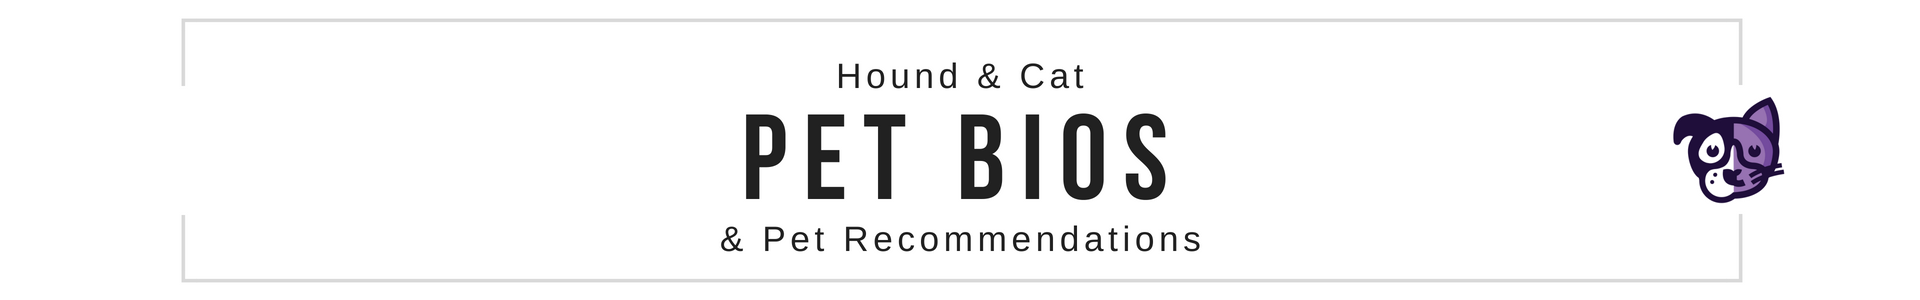 Hound & Cat Pet Supplies Product Recommedations